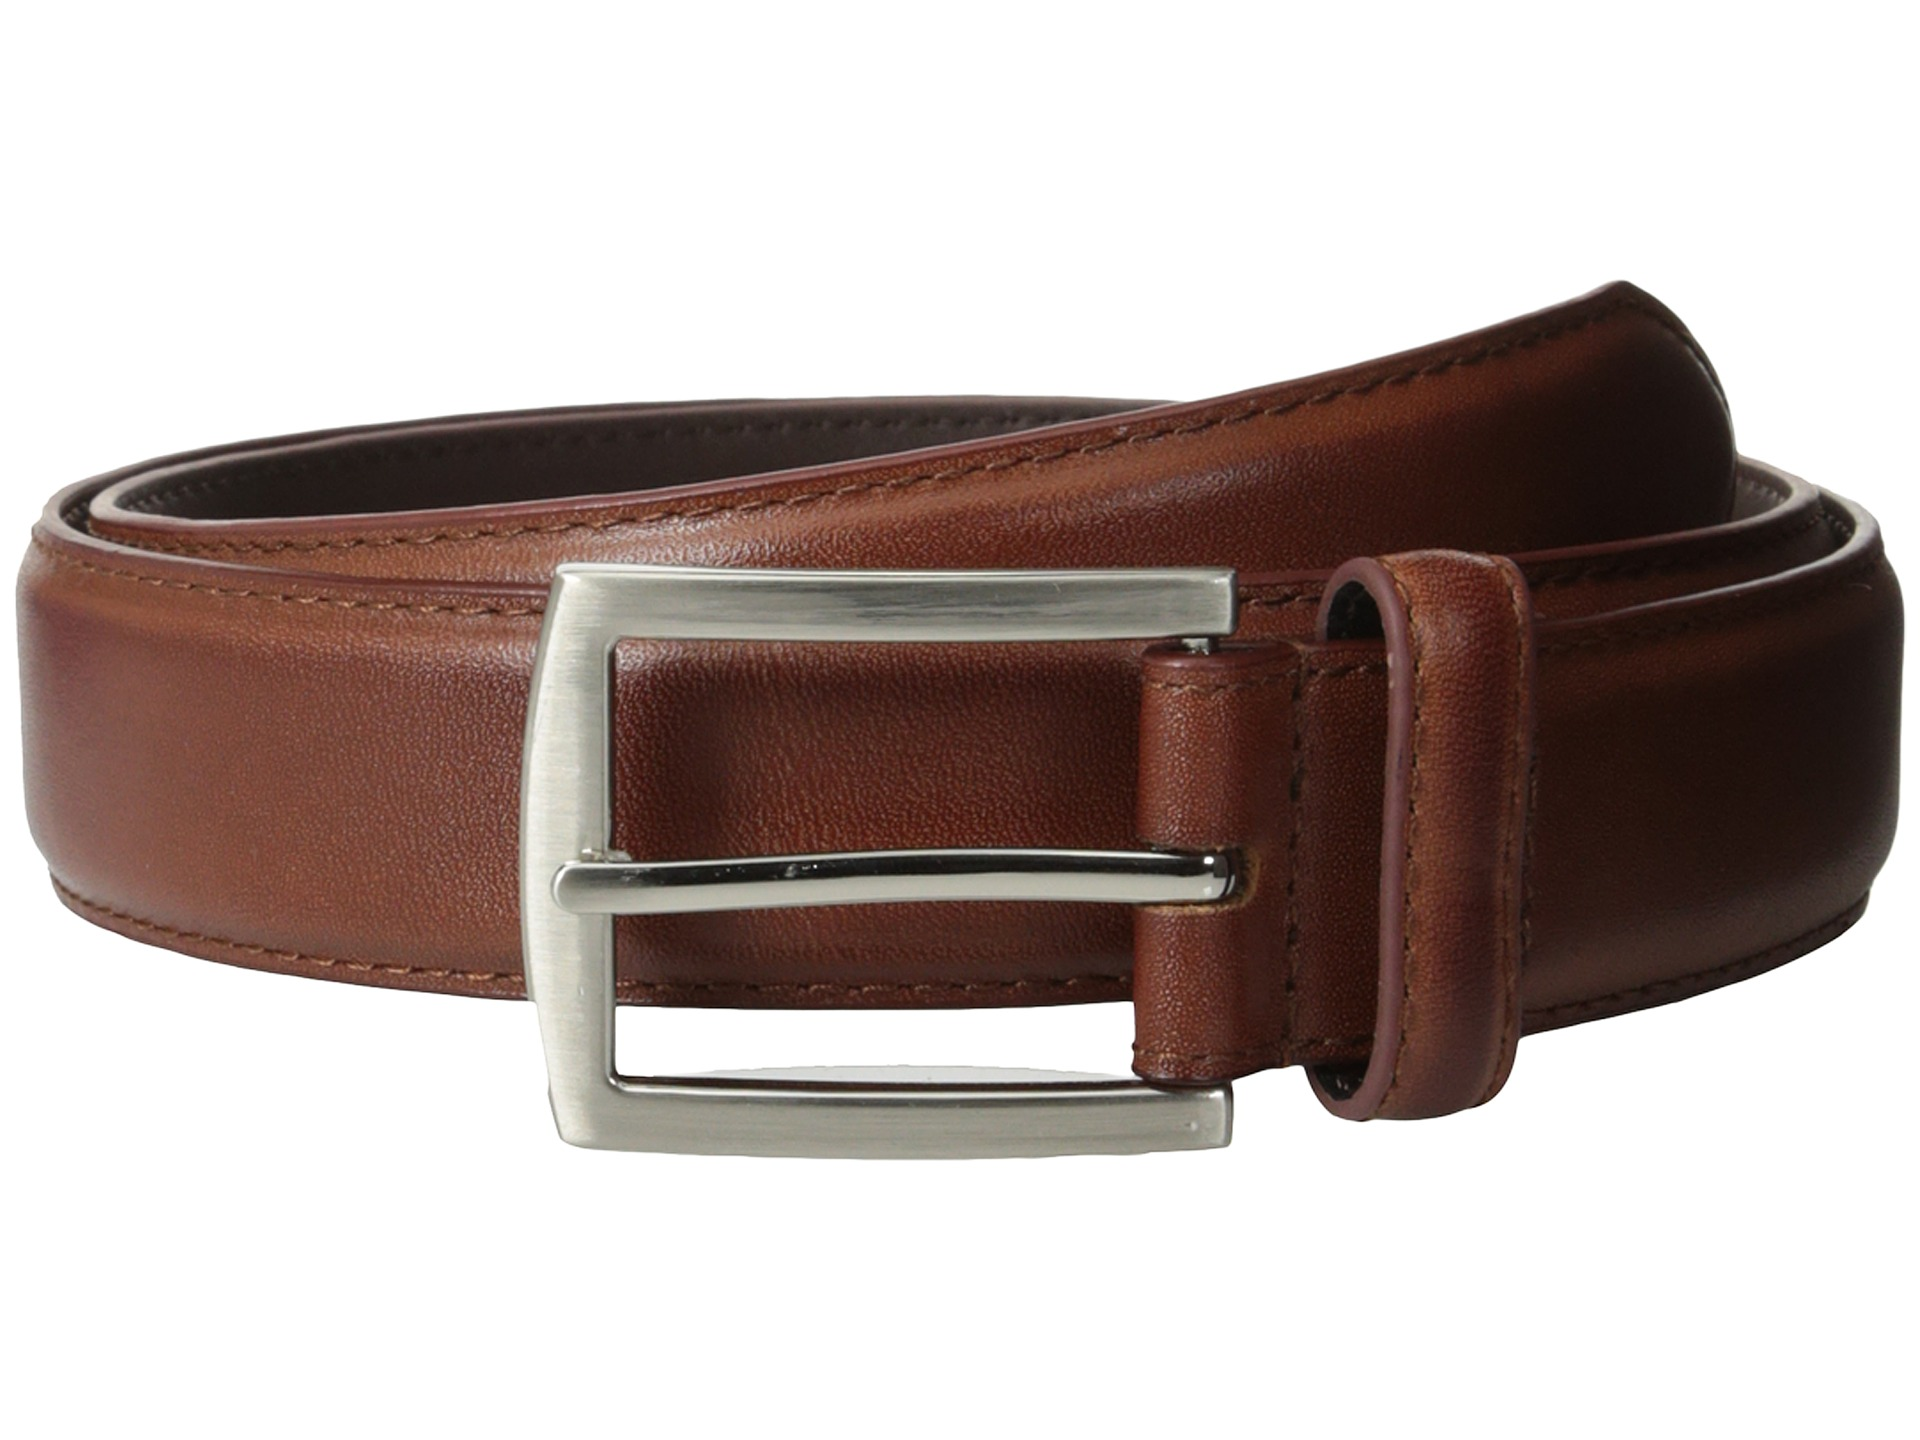 32mm grain leather top w leather lining